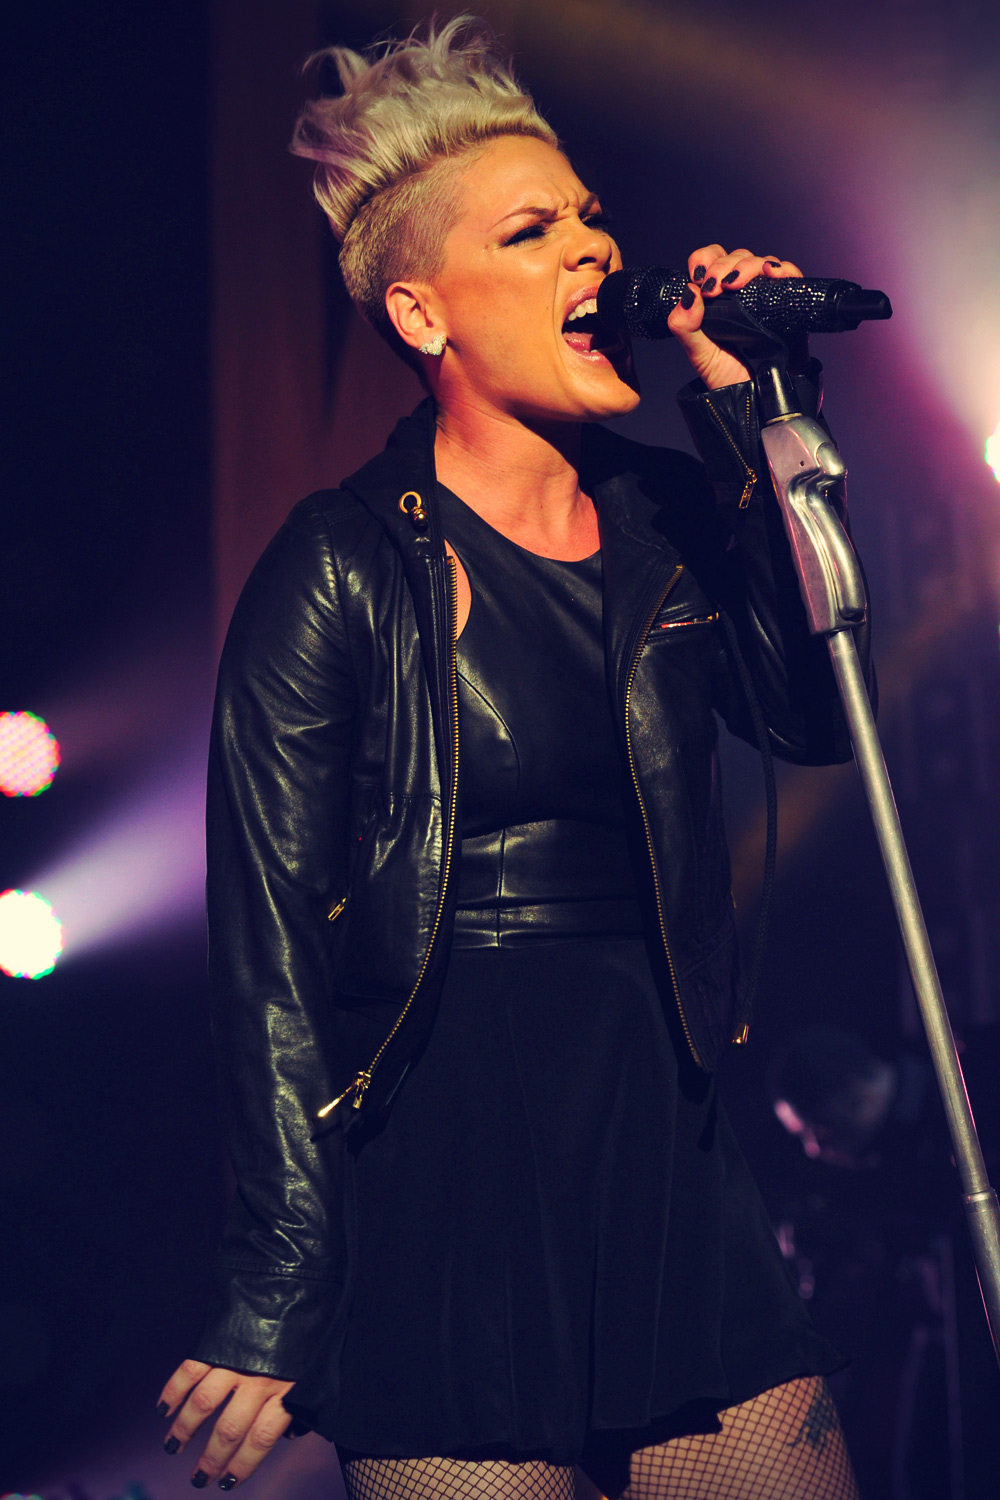 Pink performs At Circus Krone